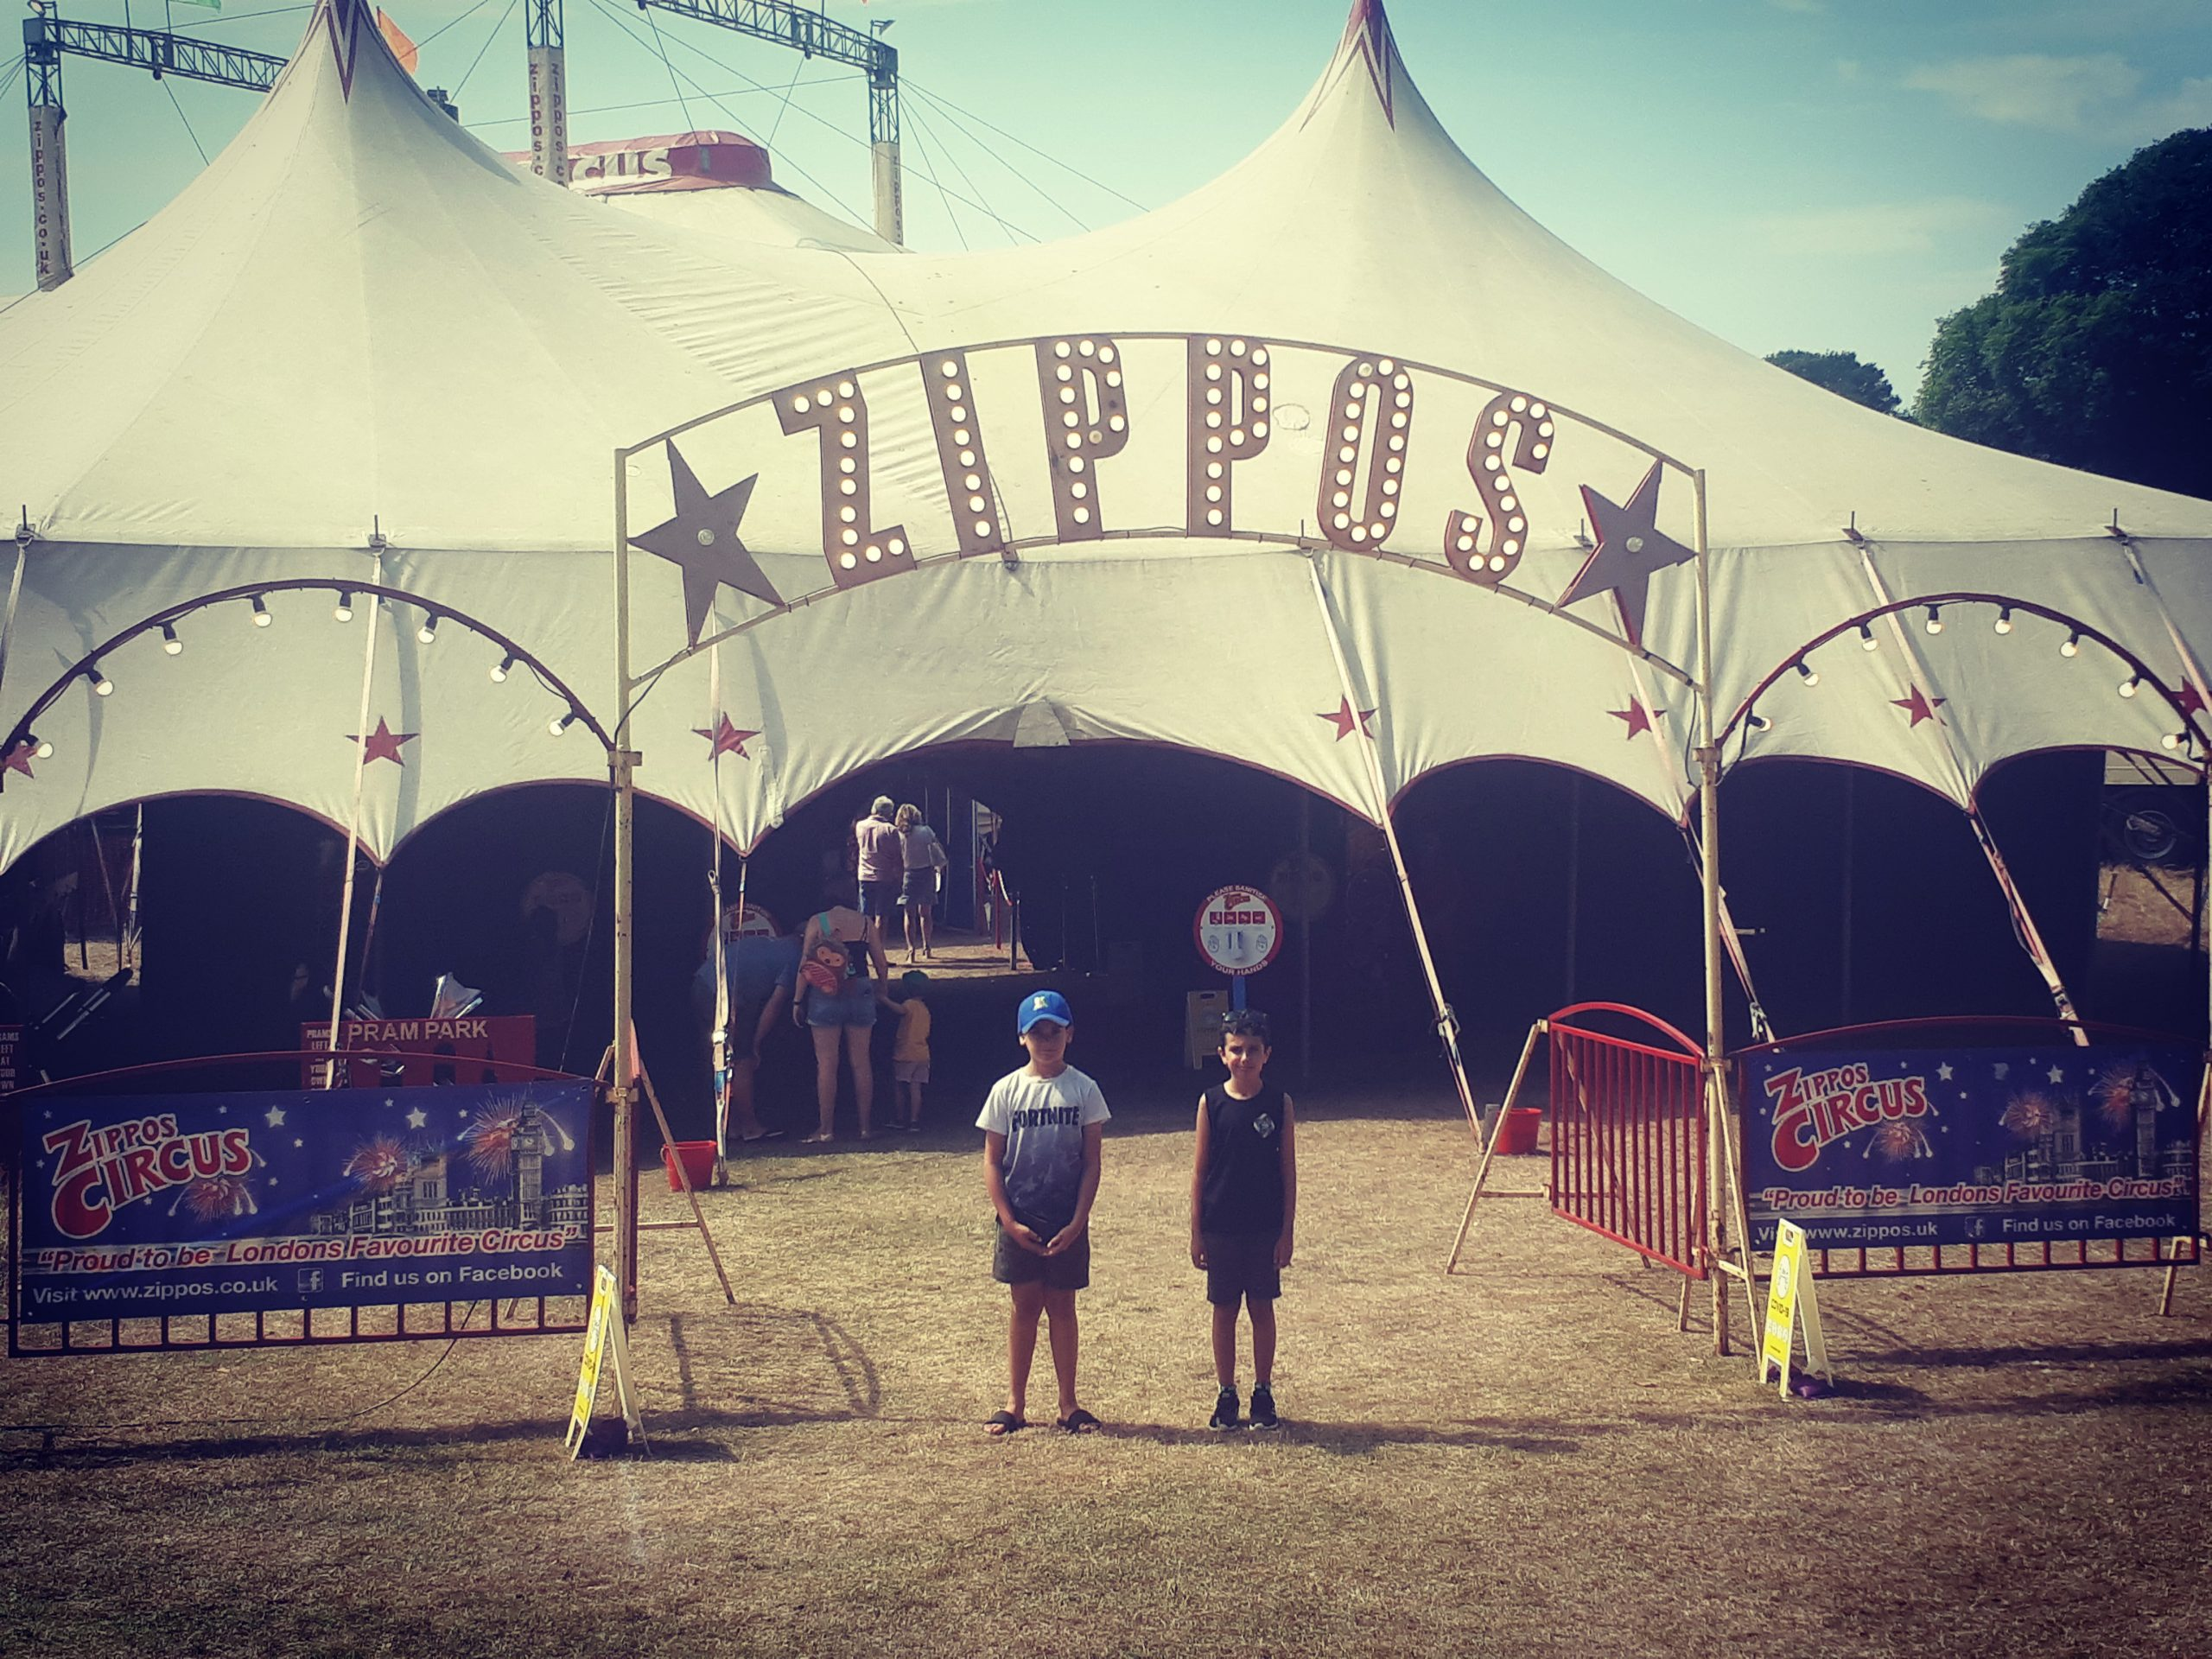 Zippos Circus Entrance with the kids